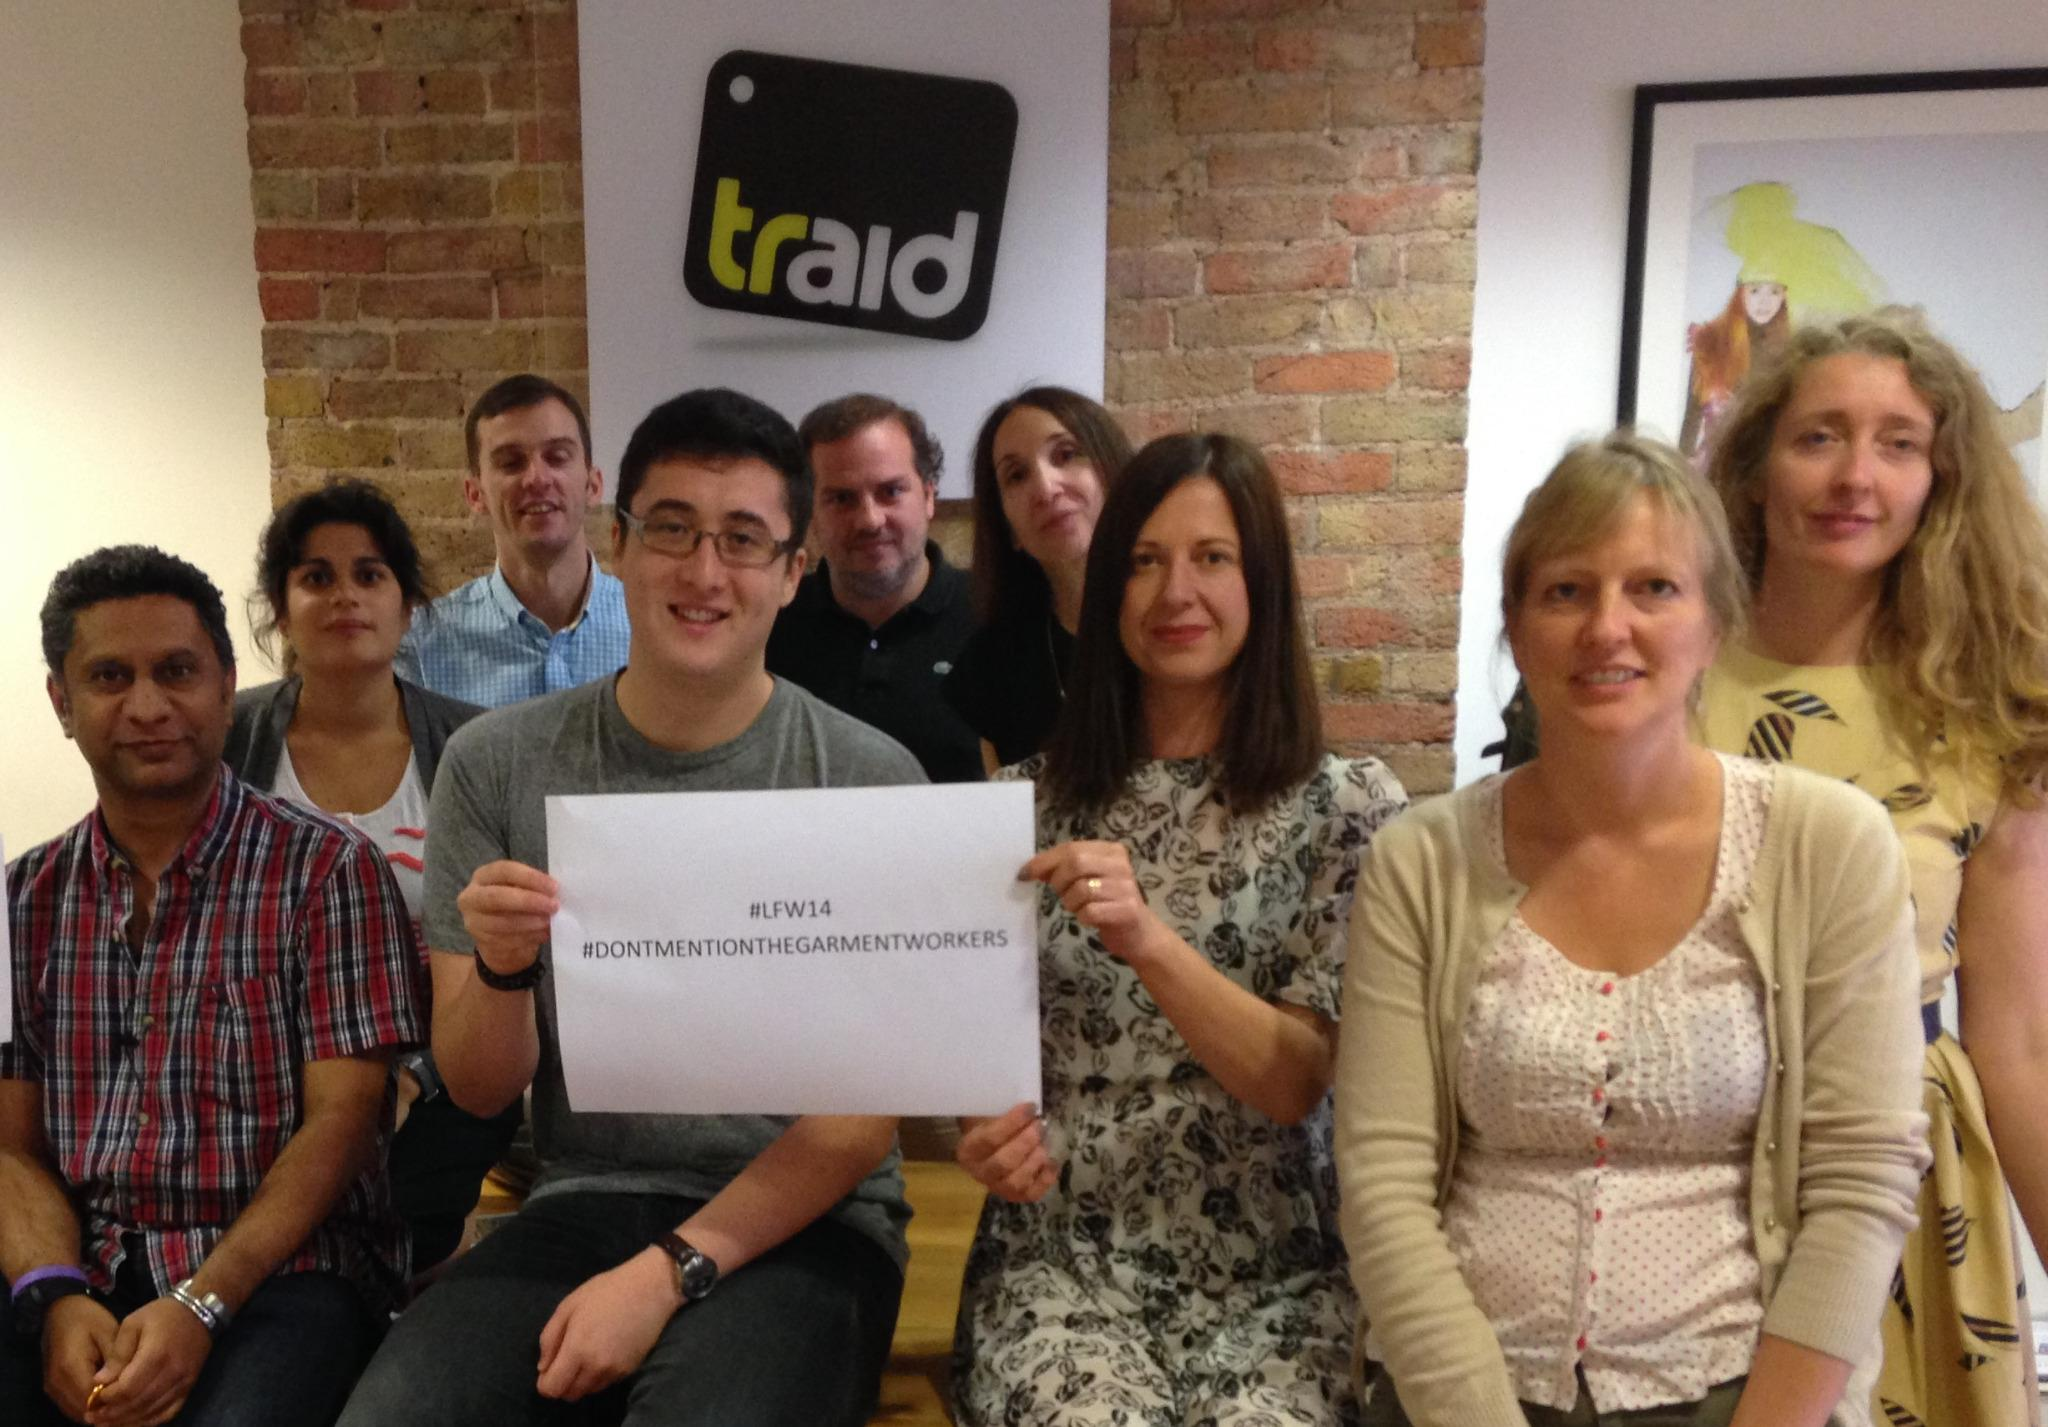 Staff at Traid Pose for a photo with the sign #DONTMENTIONTHEGARMENTWORKERS